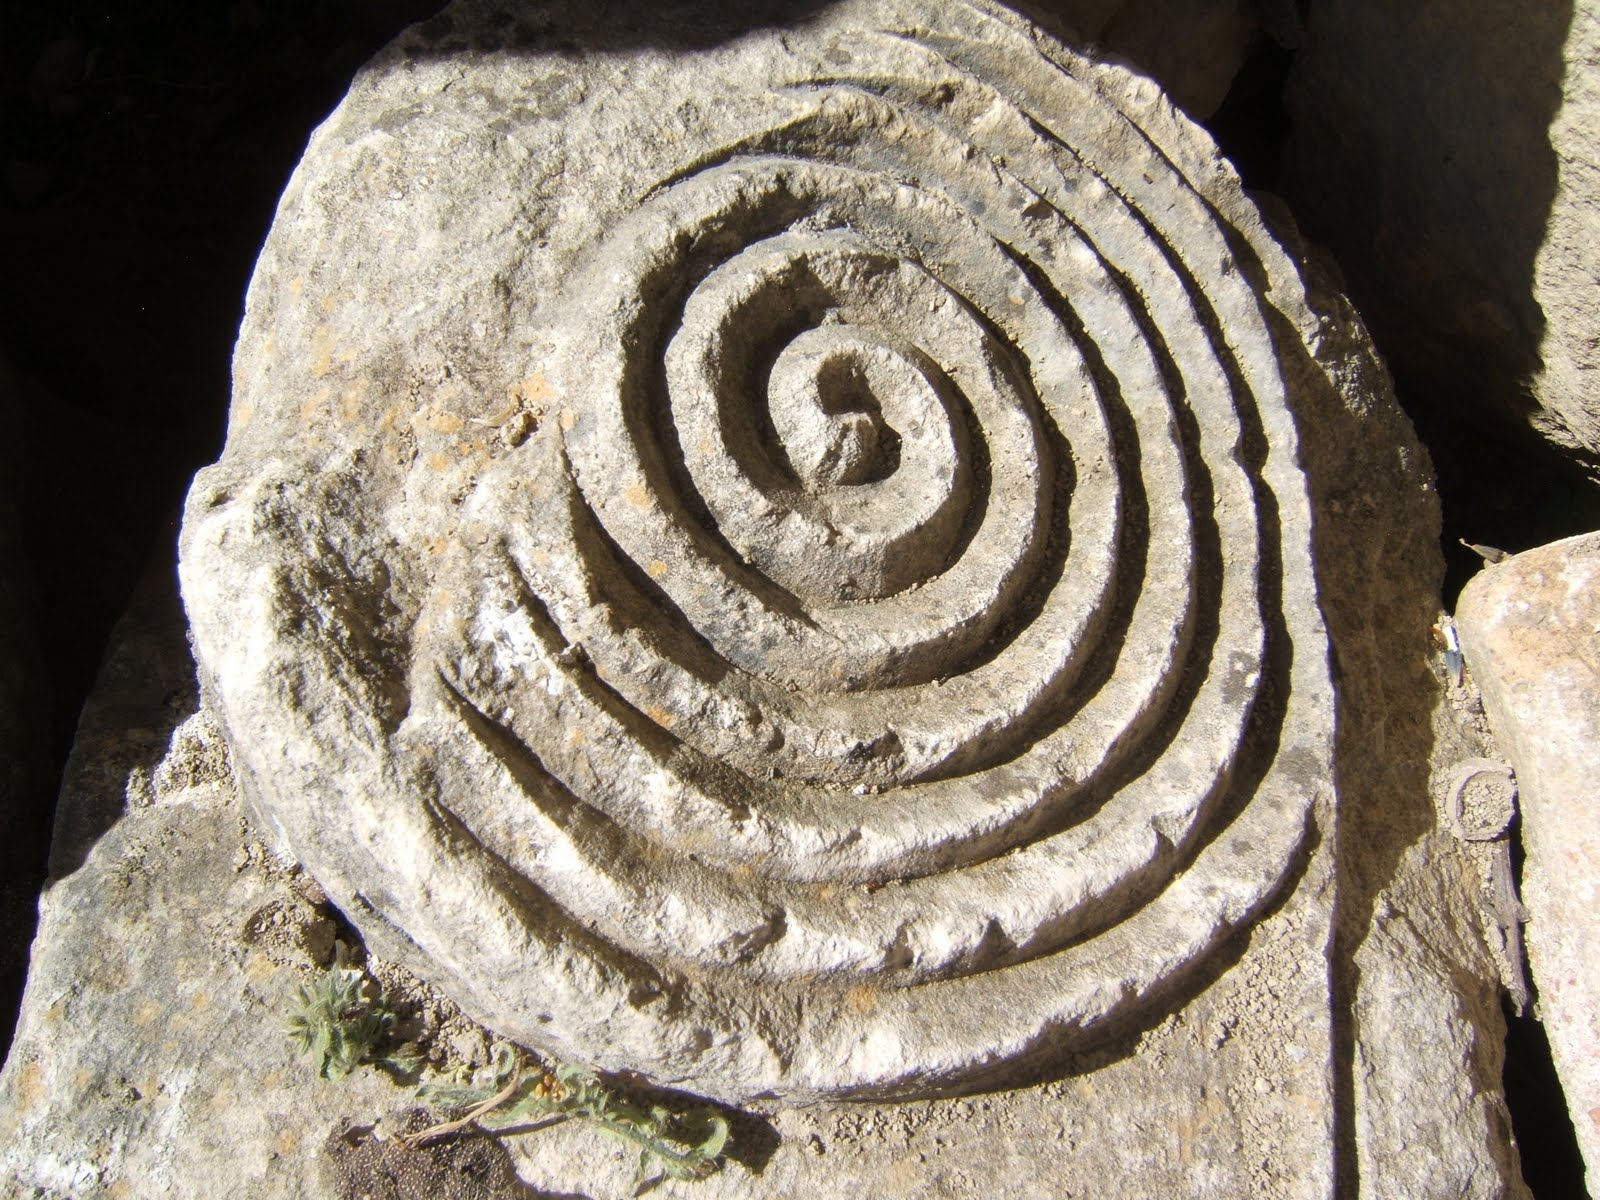 Stone spiral, from the Church of St. Nicholas, Demre, Turkey